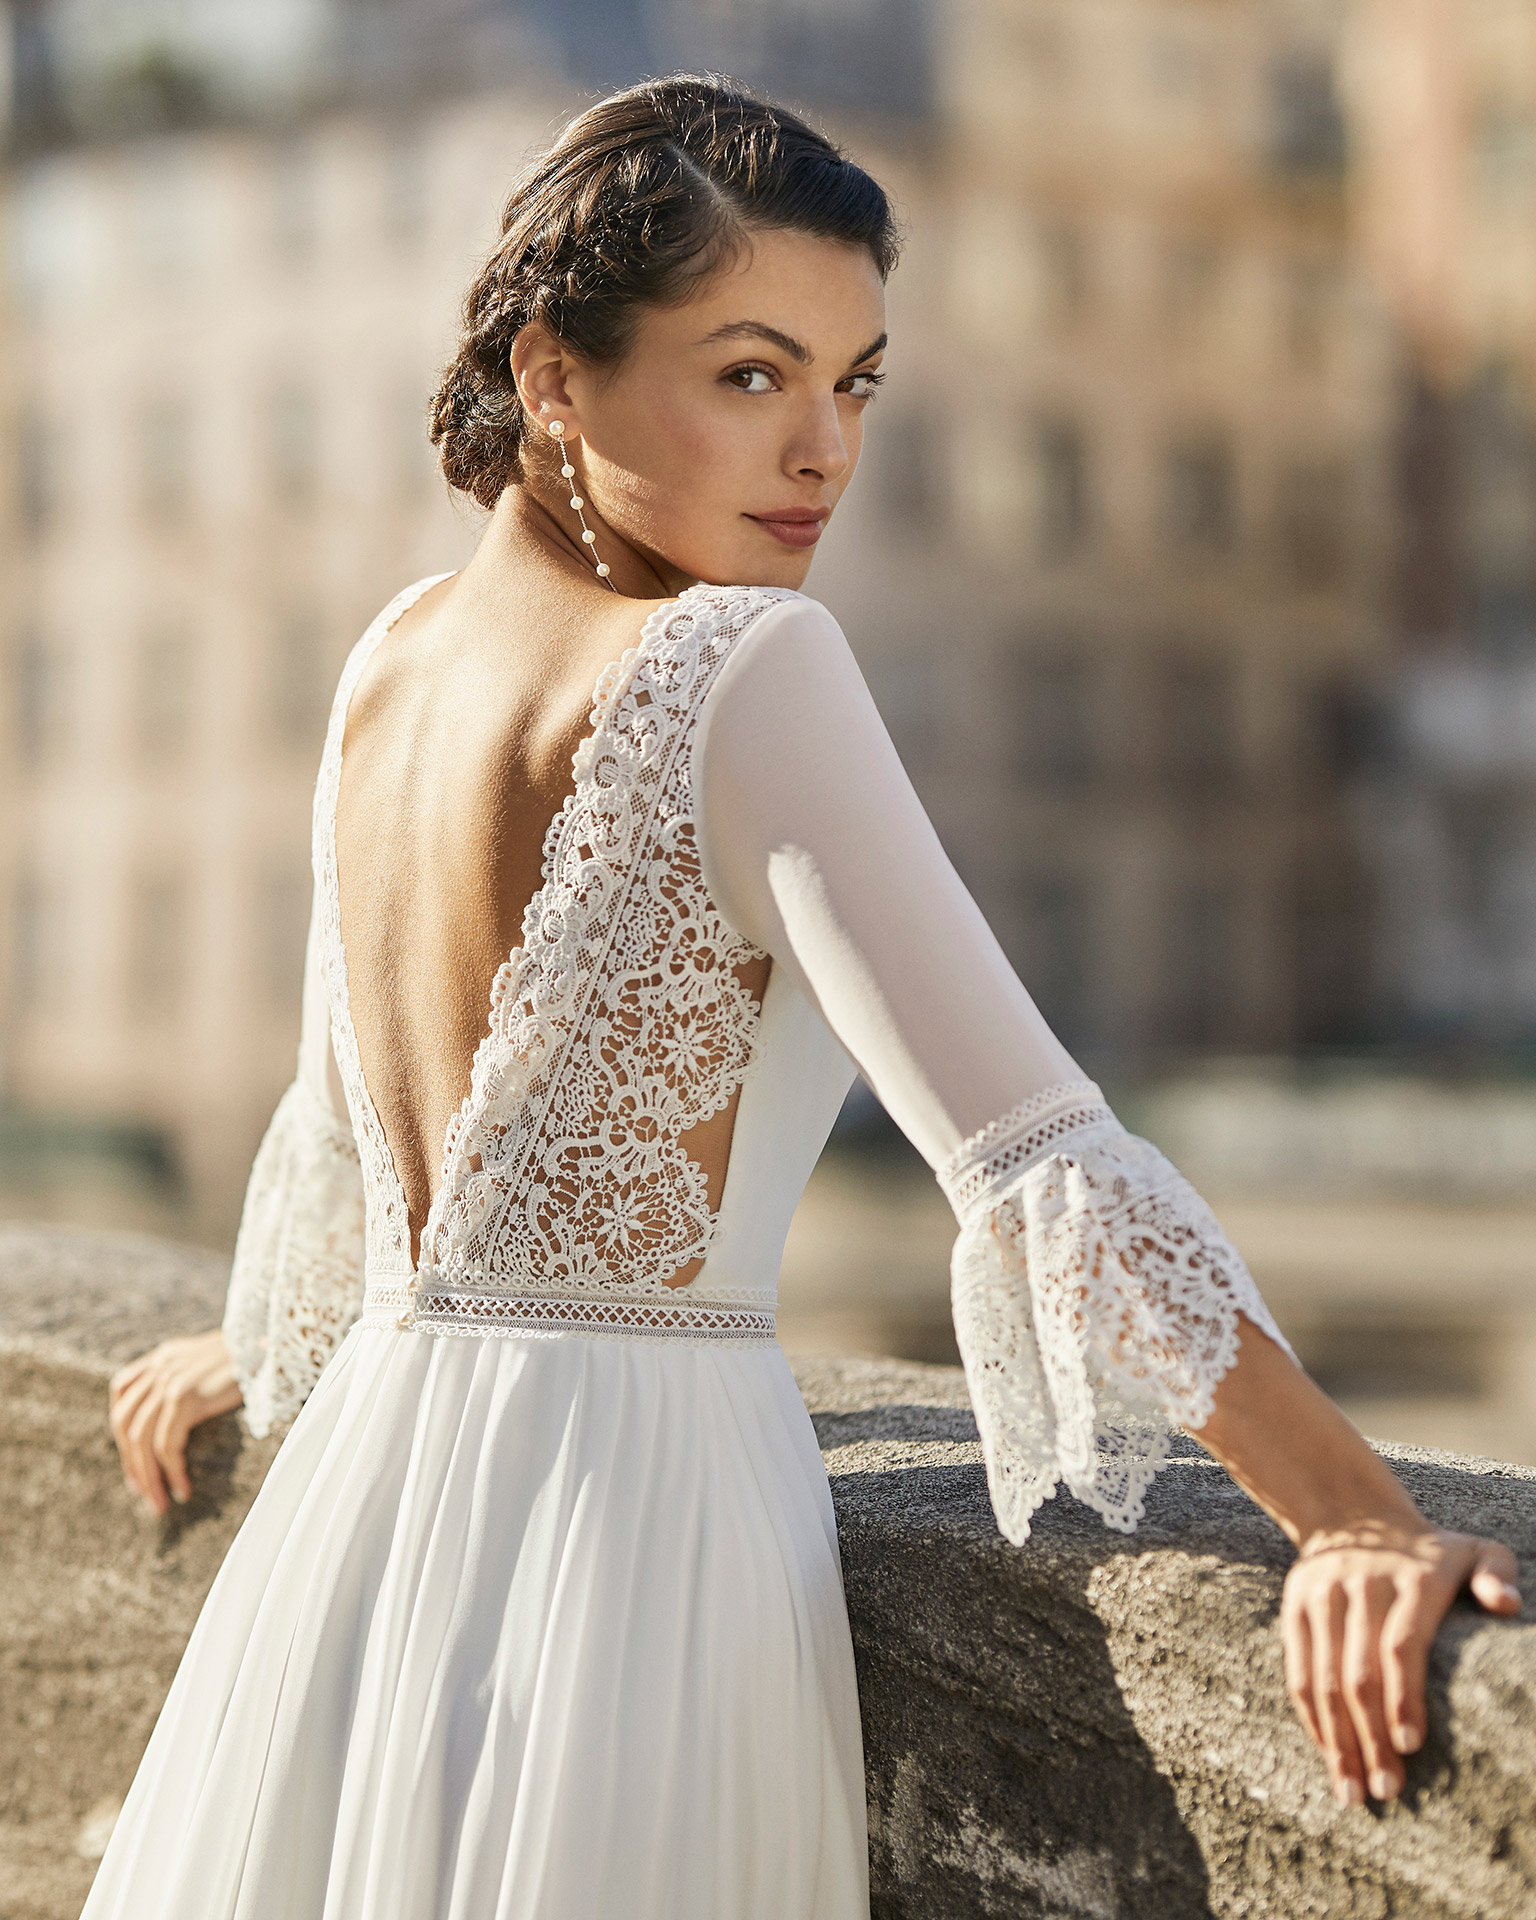 Wedding dress in chiffon. Bateau neckline, three-quarter sleeves in chiffon with flared lace cuffs, and V-back in lace. 2021 ALMANOVIA Collection.